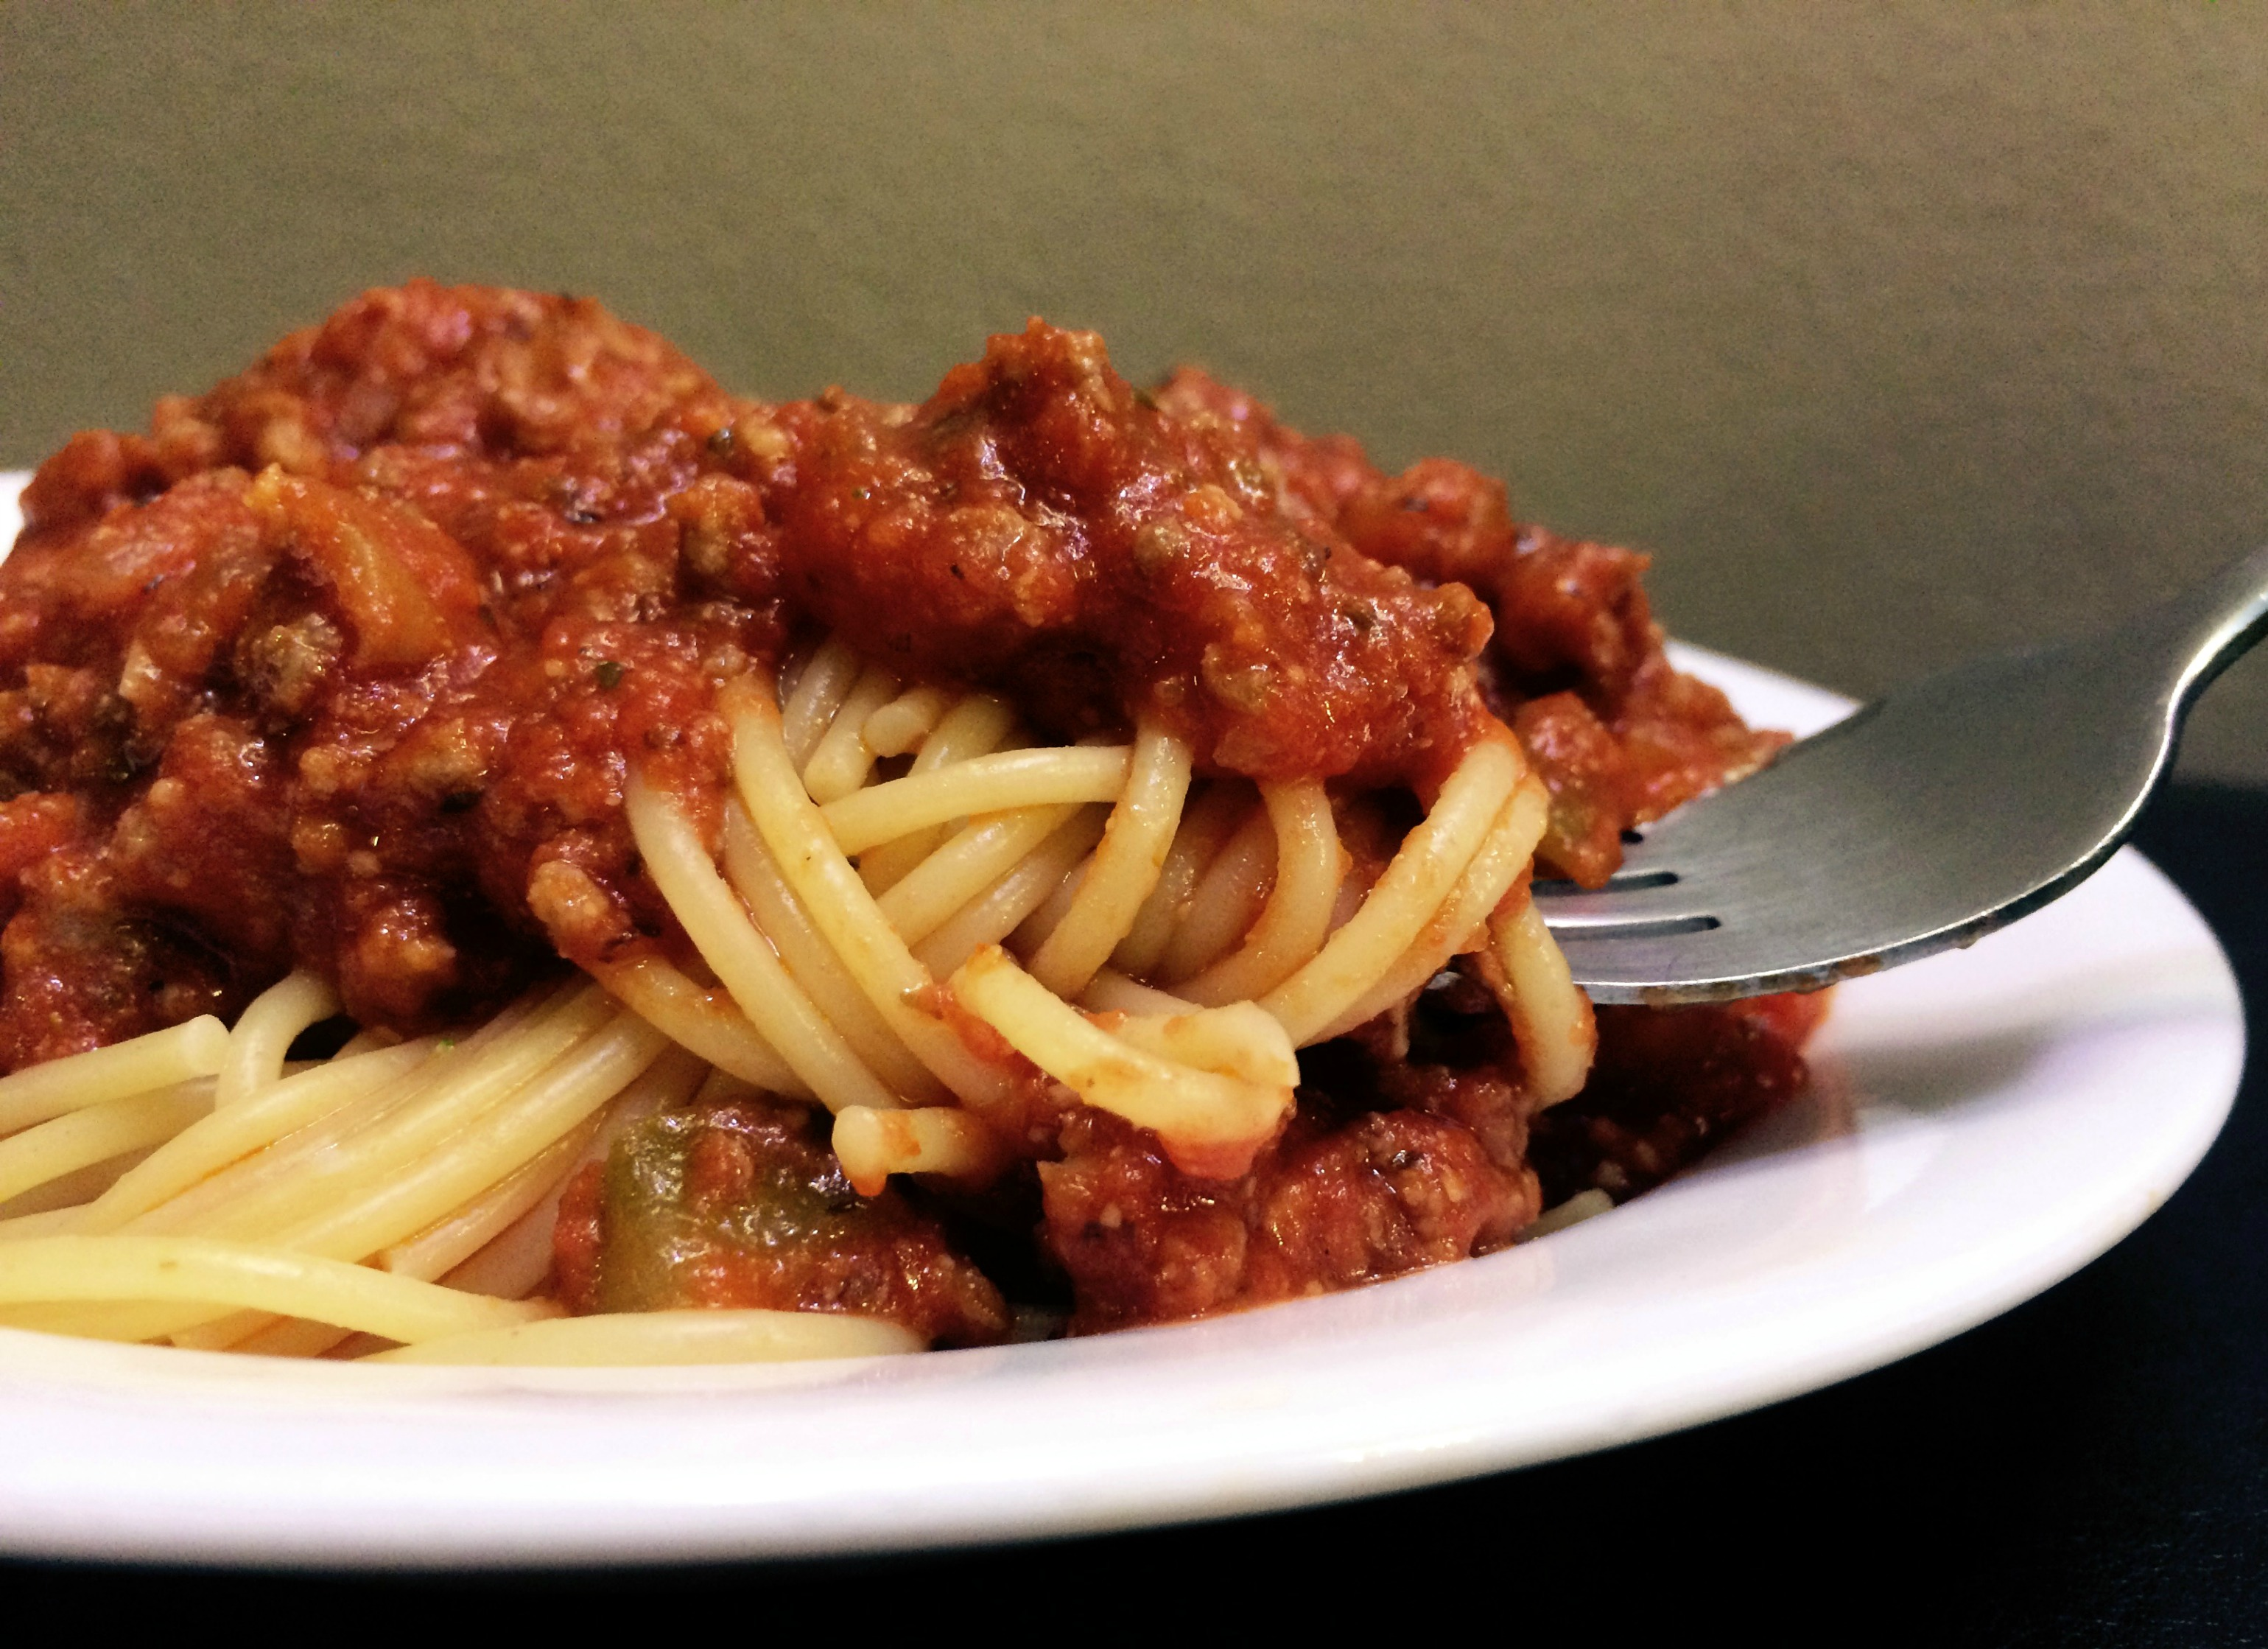 Spaghetti Amp Meat Sauce Aunt Bee S Recipes